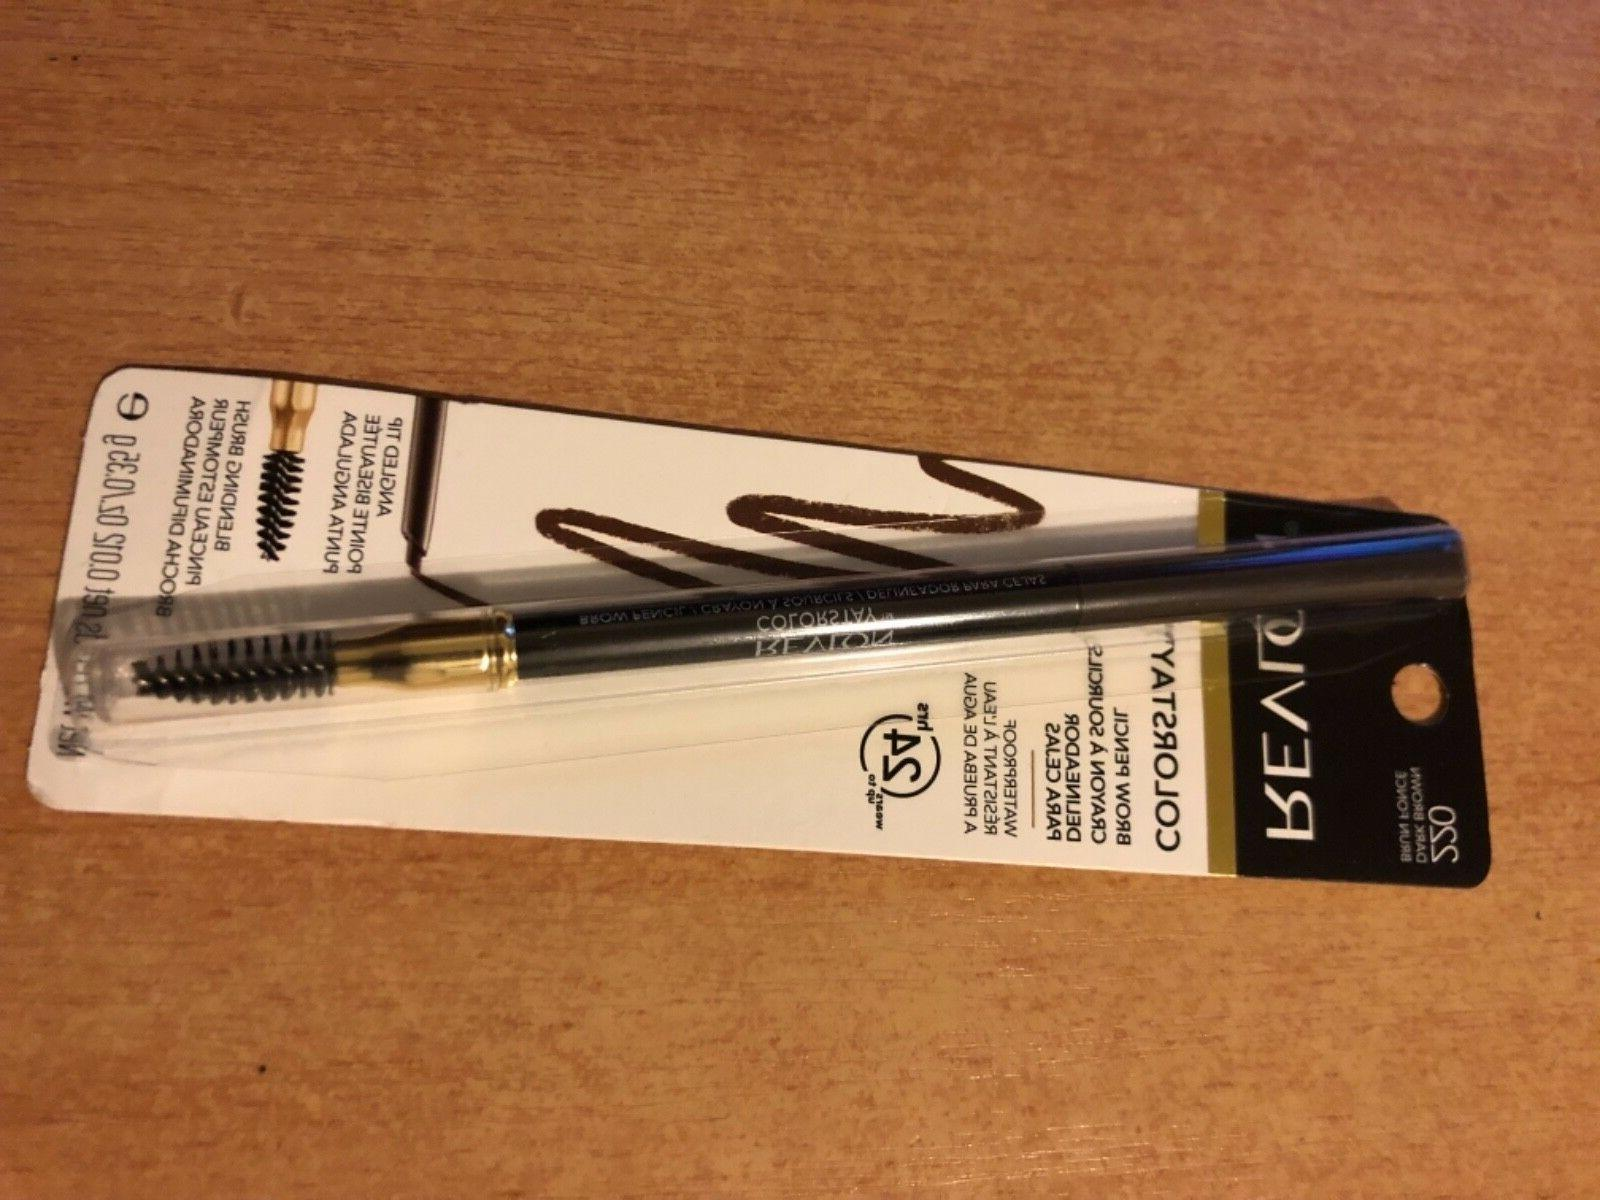 1 x colorstay eye brow pencil 220